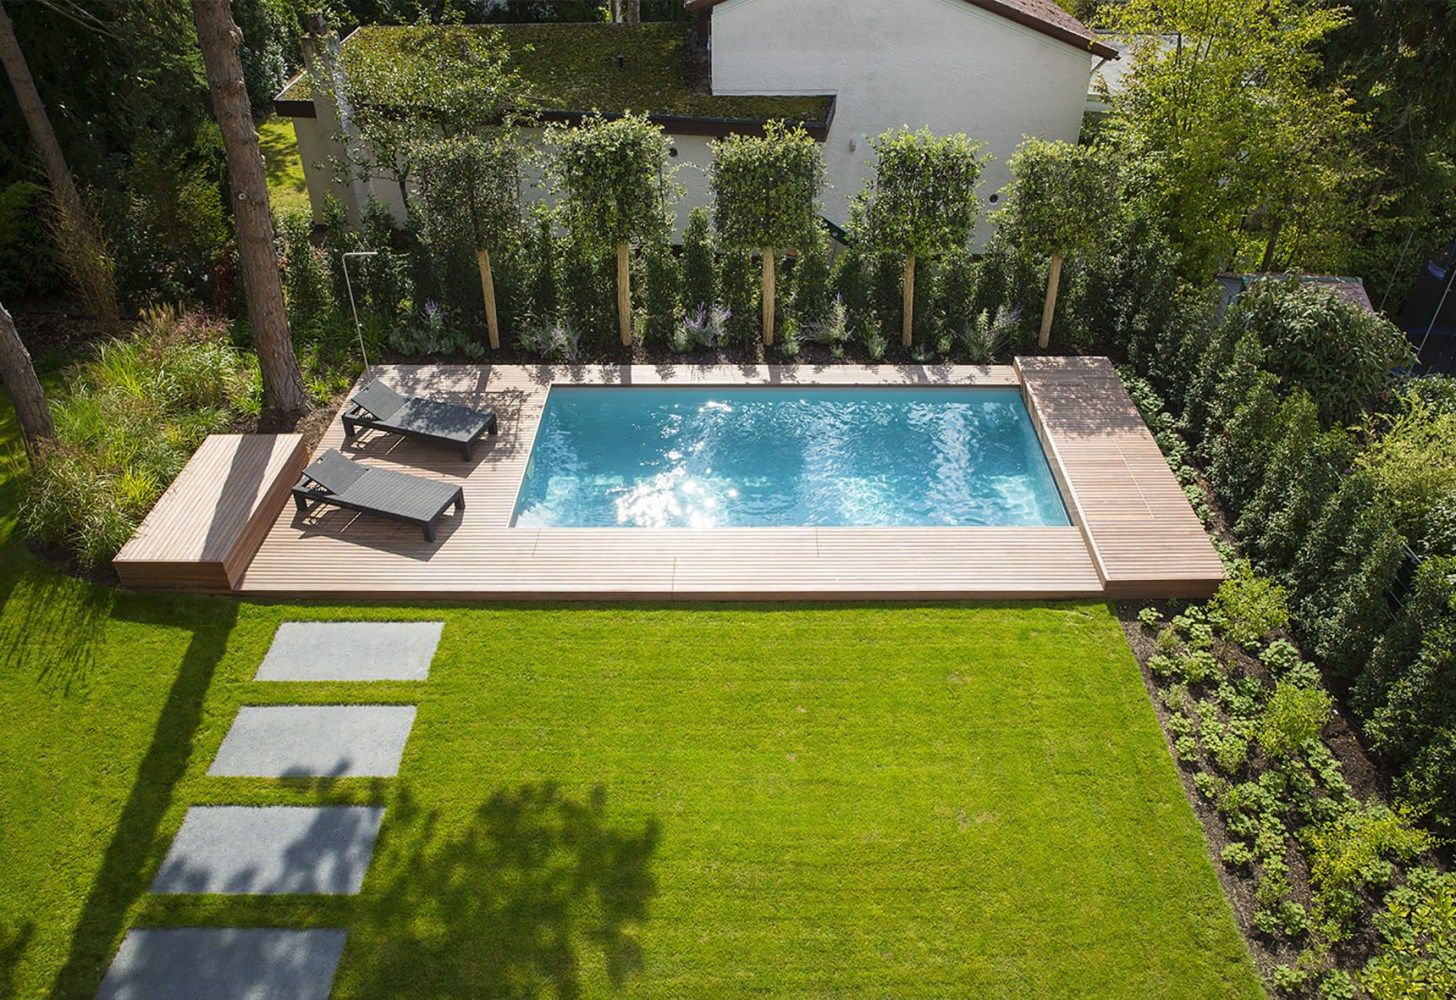 Pool in kleinem garten garten pinterest garten pool for Garten pool chlortabletten